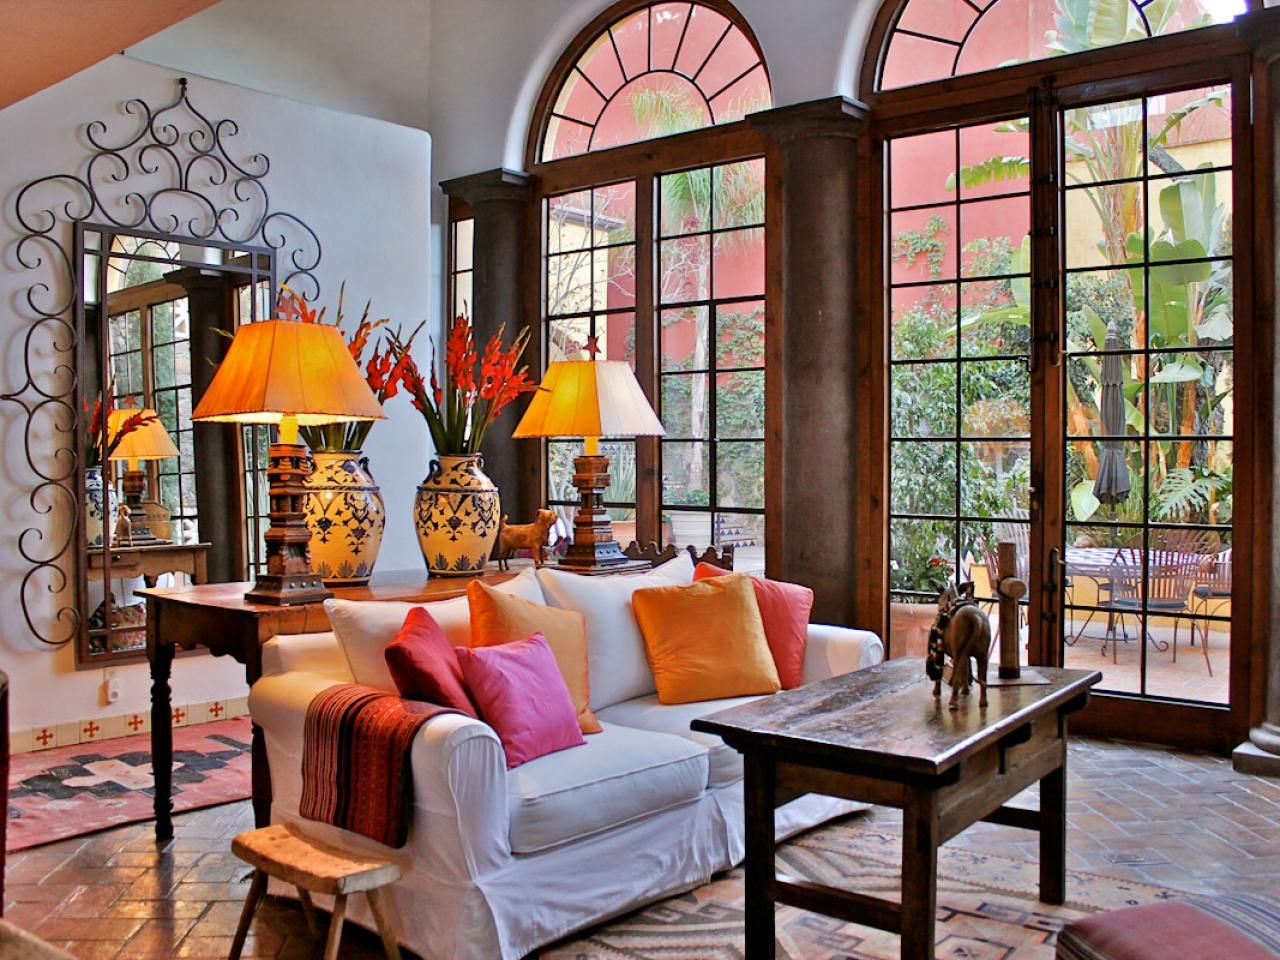 10 Spanish Inspired Rooms | Interior Design Styles And Color Schemes For  Home Decorating |